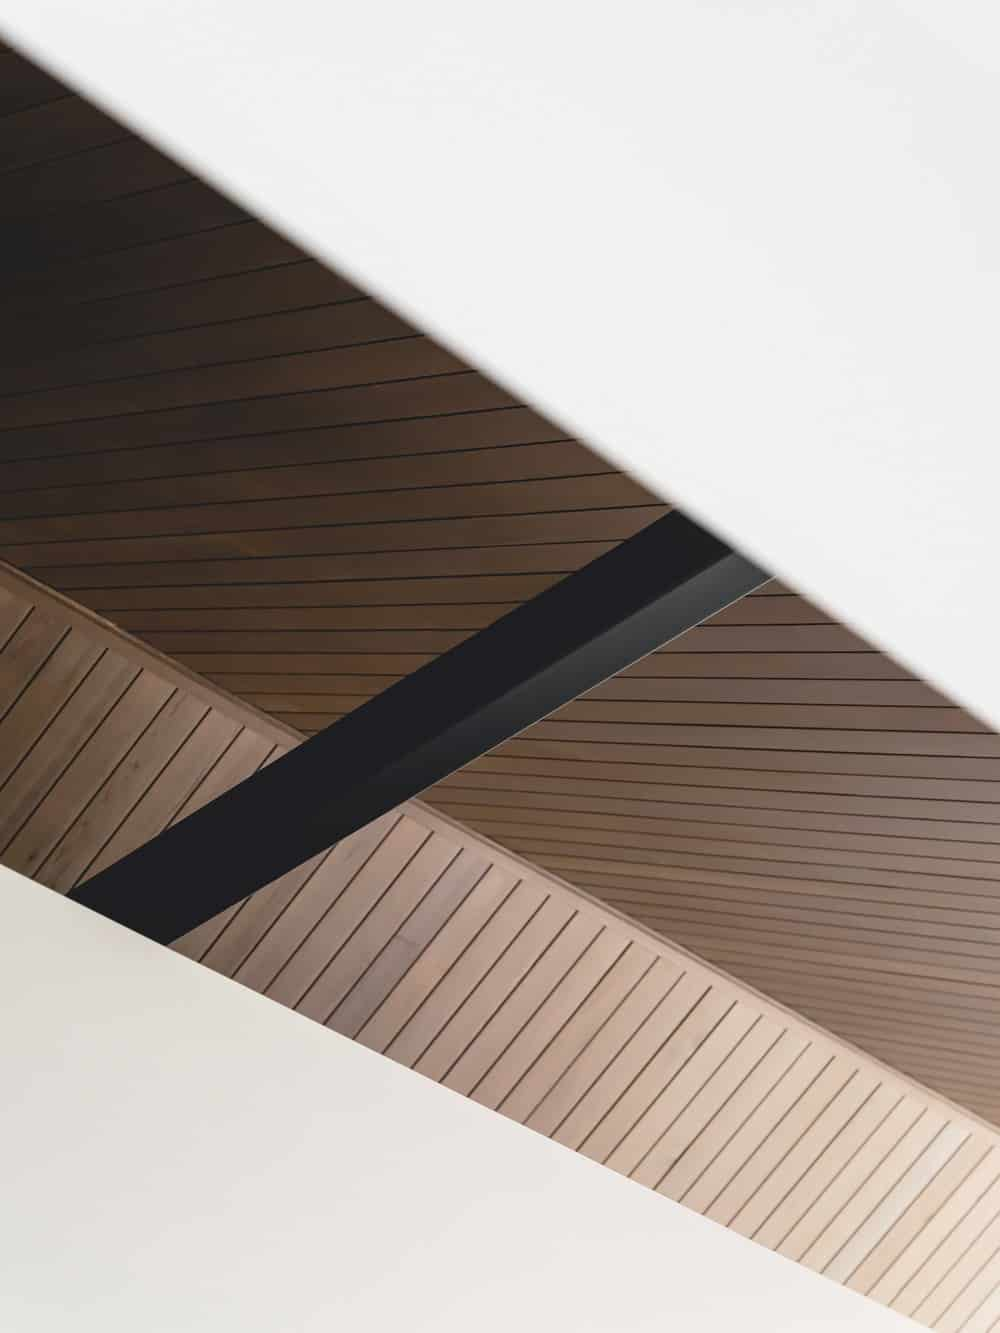 This is a close look at the tall wooden shiplap cathedral ceiling with a look at a single black beam.